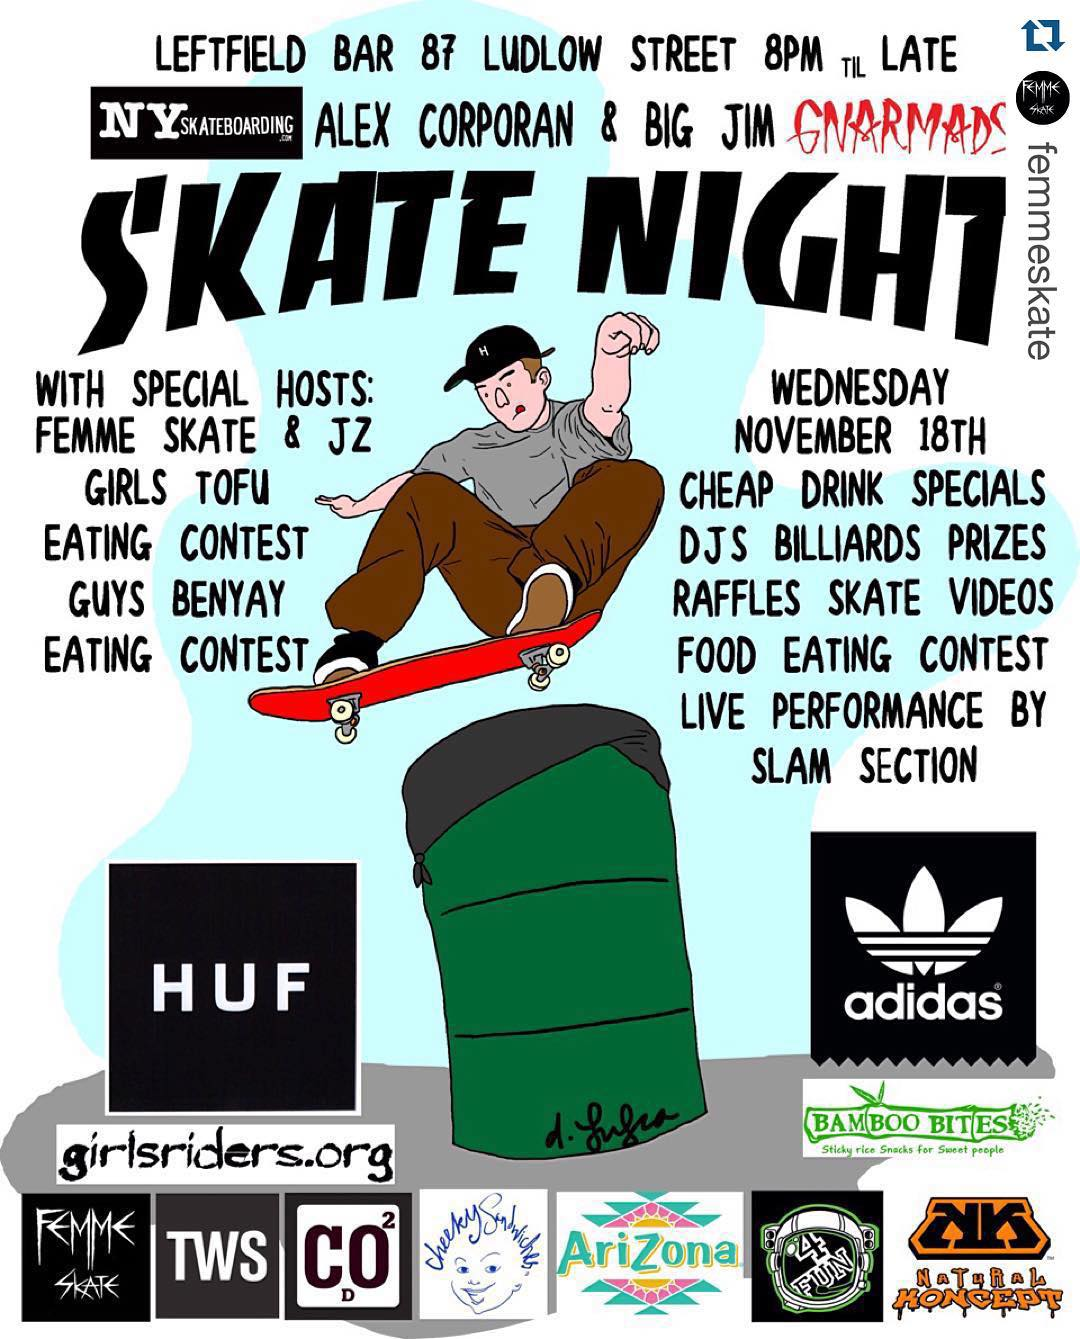 Come by tomorrow night and see the @femmeskate NYC female skate film